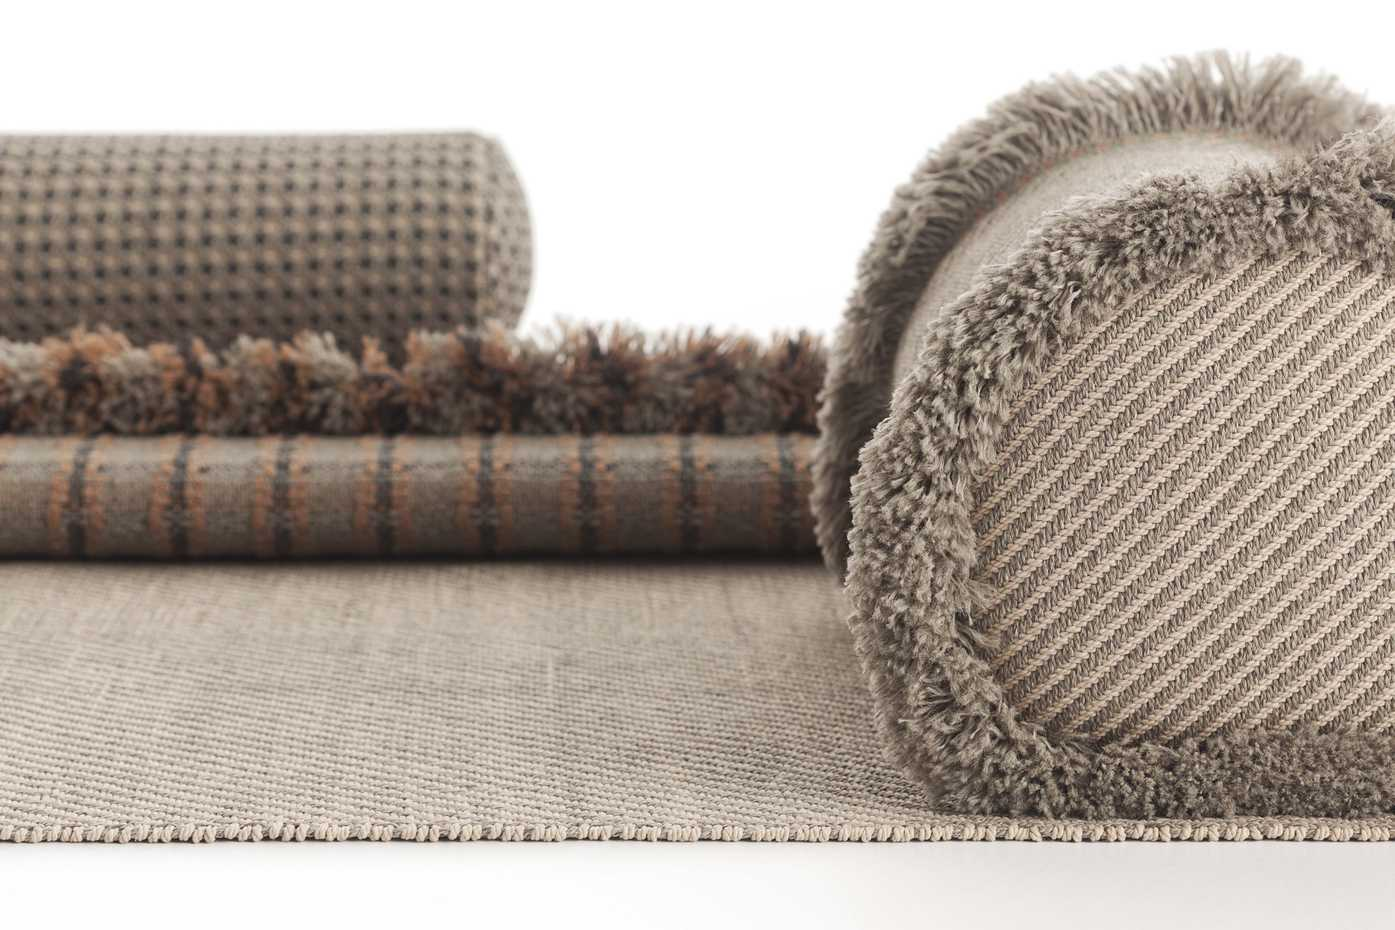 Garden Layers Rolls  by Gan Rugs product image 1